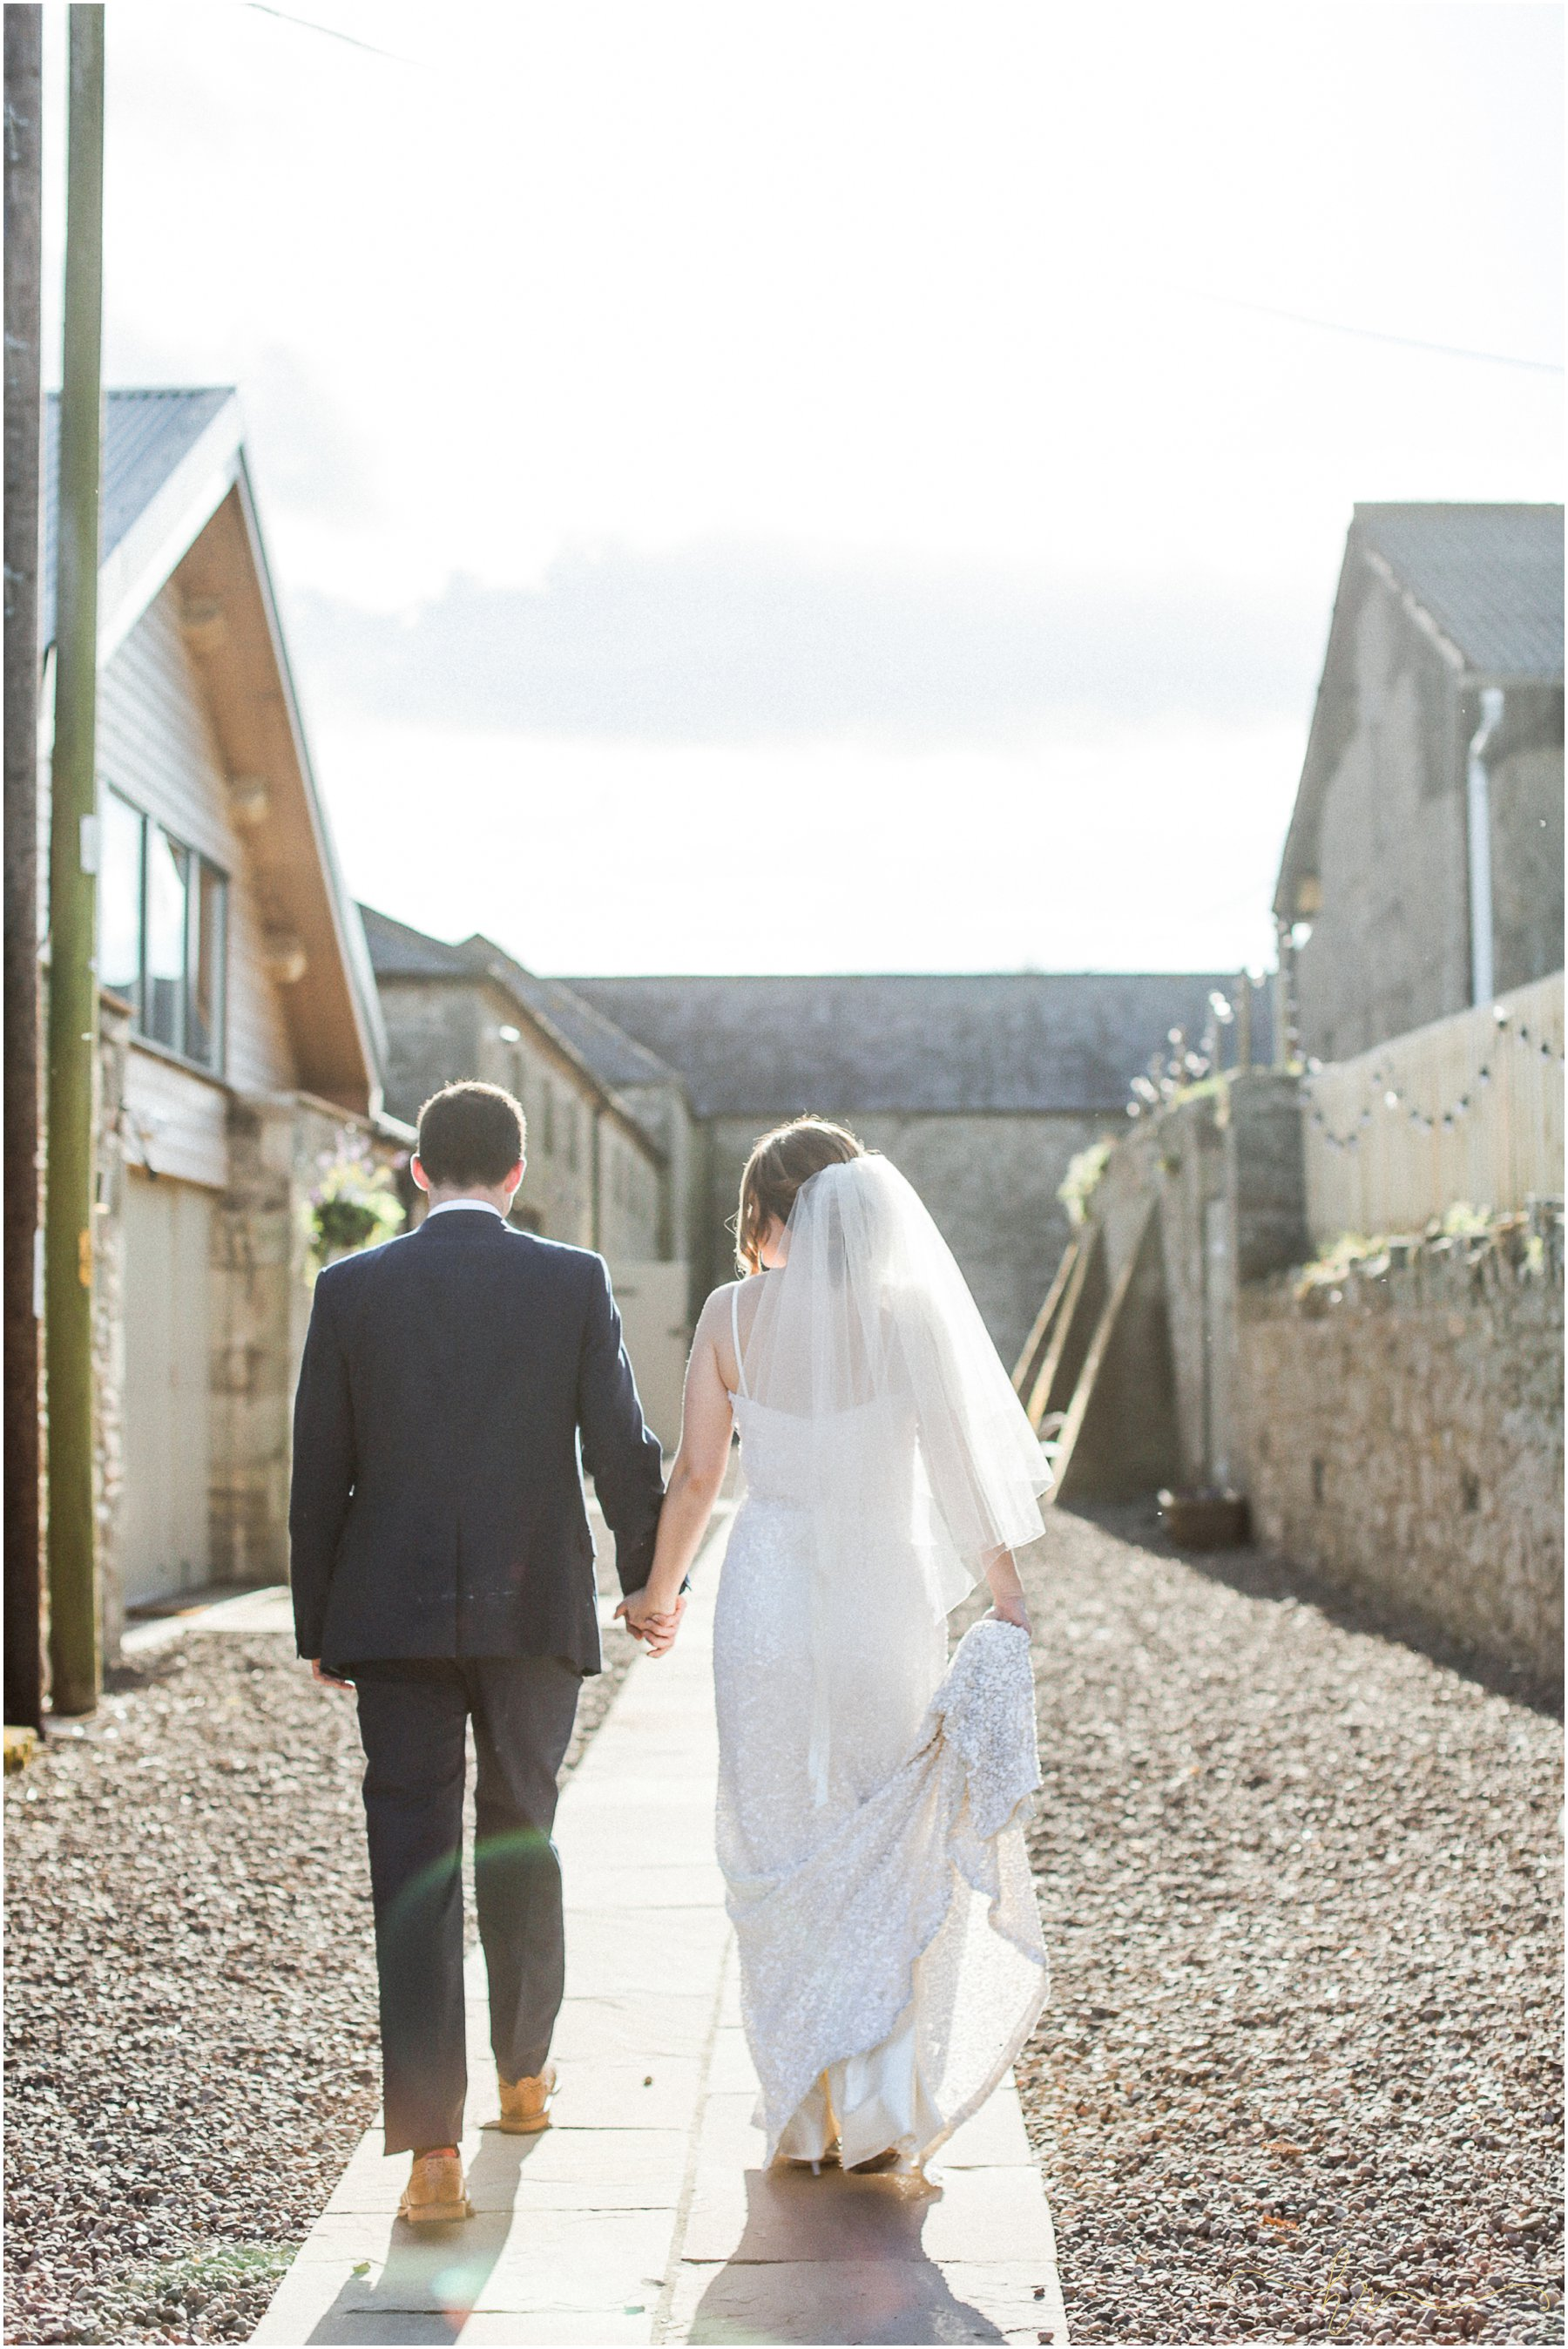 Doxford-Barn-Wedding-Photography_0366